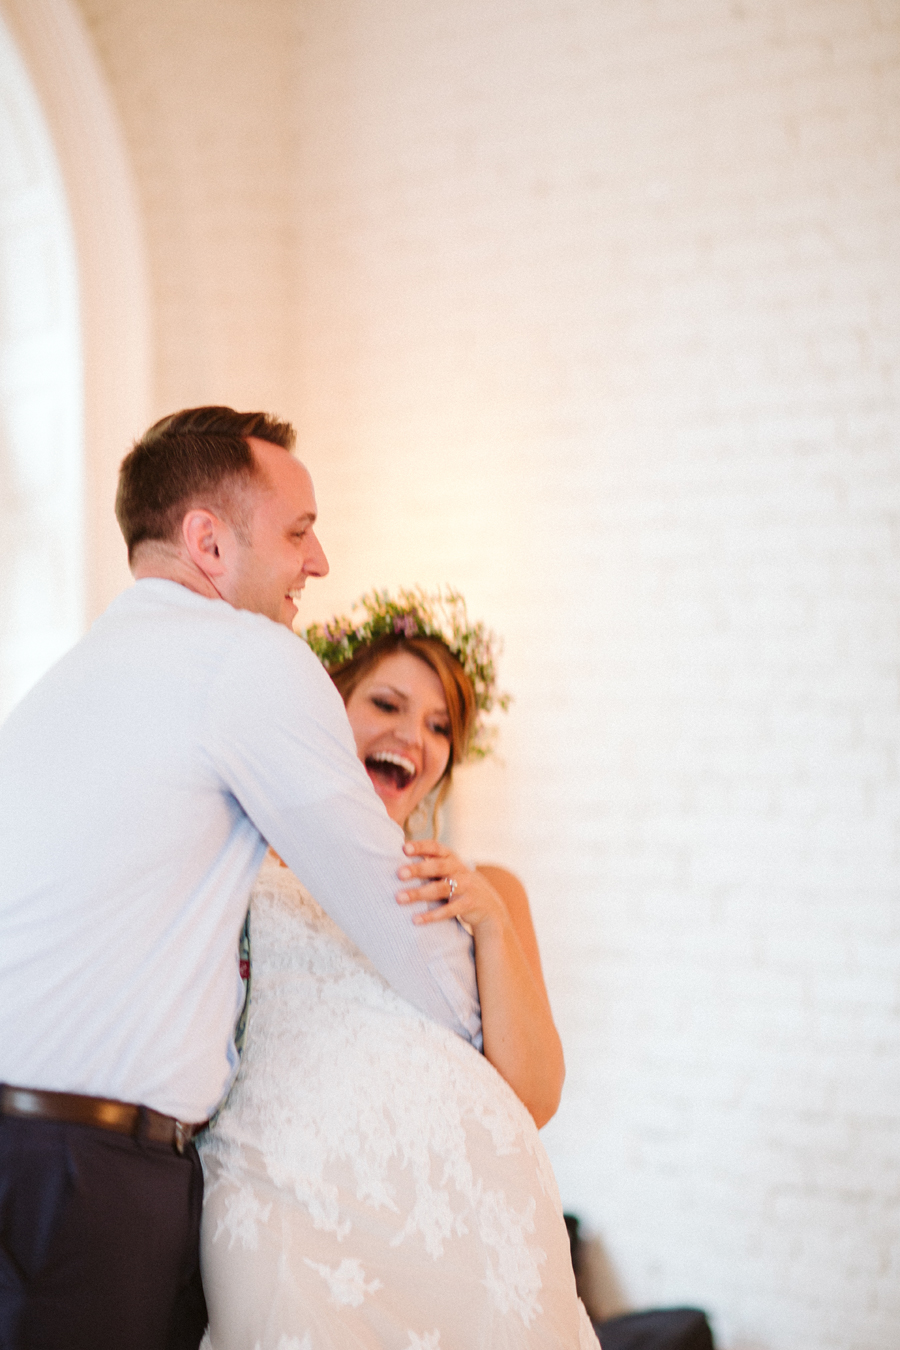 Seattle Wedding, Boho Bride BHLDN Bridal Gown photos by Reese Ferguson